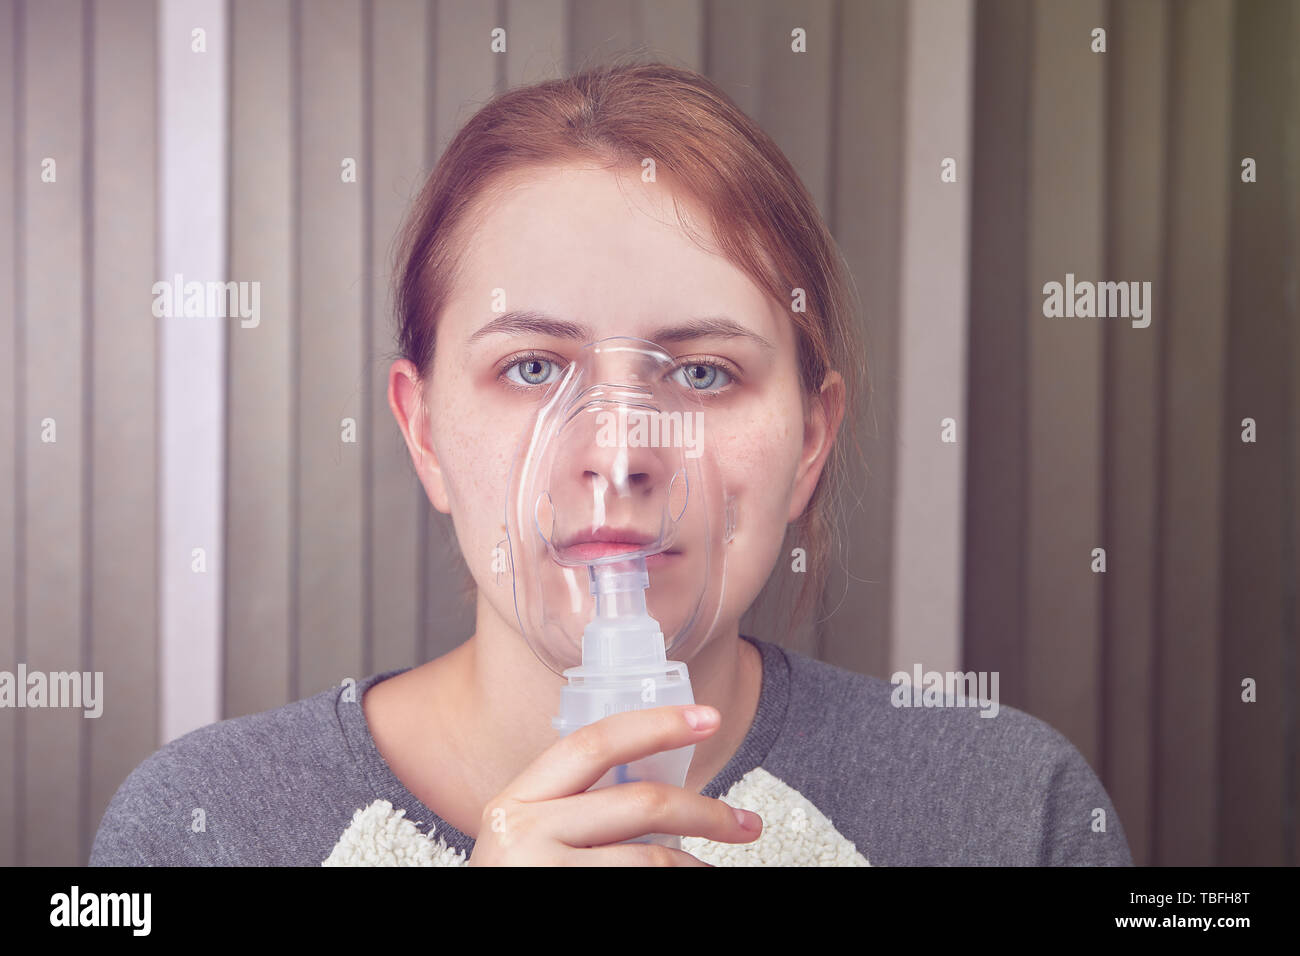 Young woman is breathing with help of nebulizer mask, because she has chronic obstructive pulmonary disease. - Stock Image